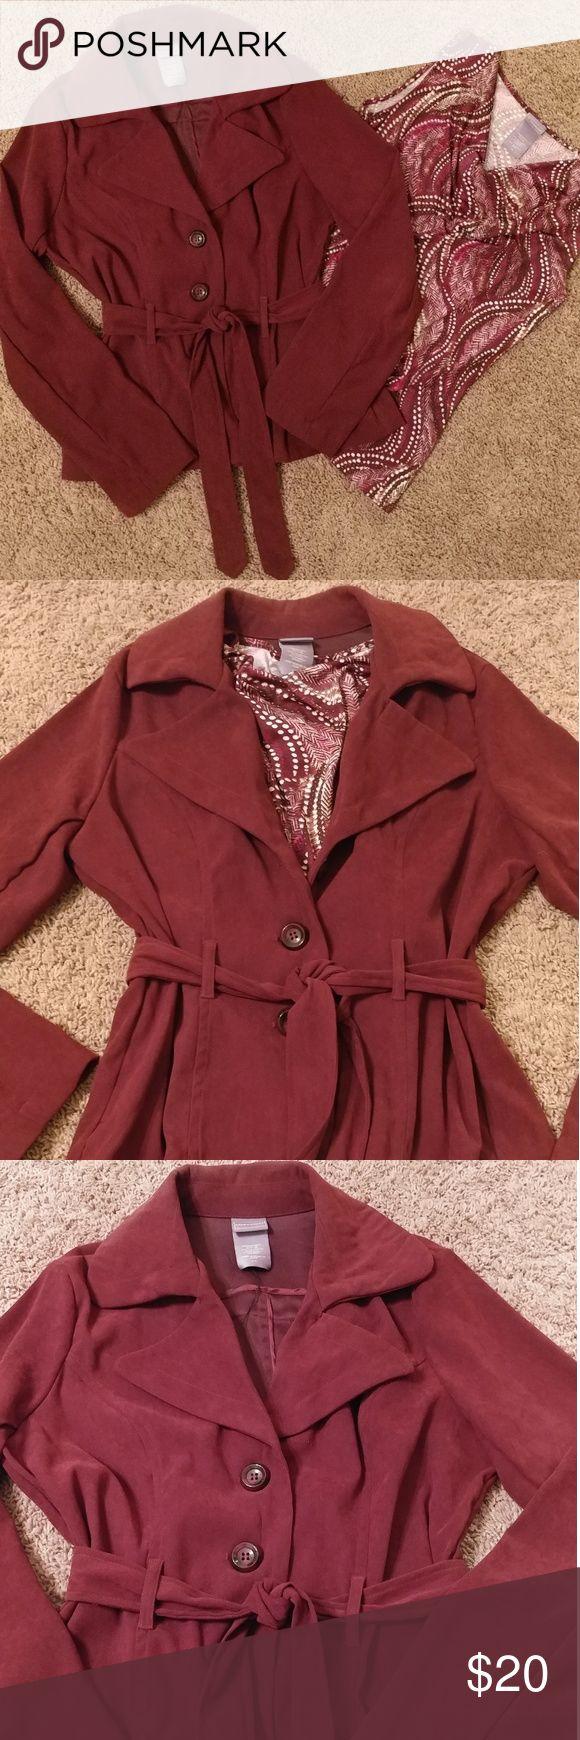 Matching jacket and shirt This matching set is right on trend for fall. The beautiful deep maroon color is the perfect compliment to any color dress pants or jeans. The tie front jacket can be worn several different ways with the shell or without. The choice is yours! Laura Scott Jackets & Coats Blazers